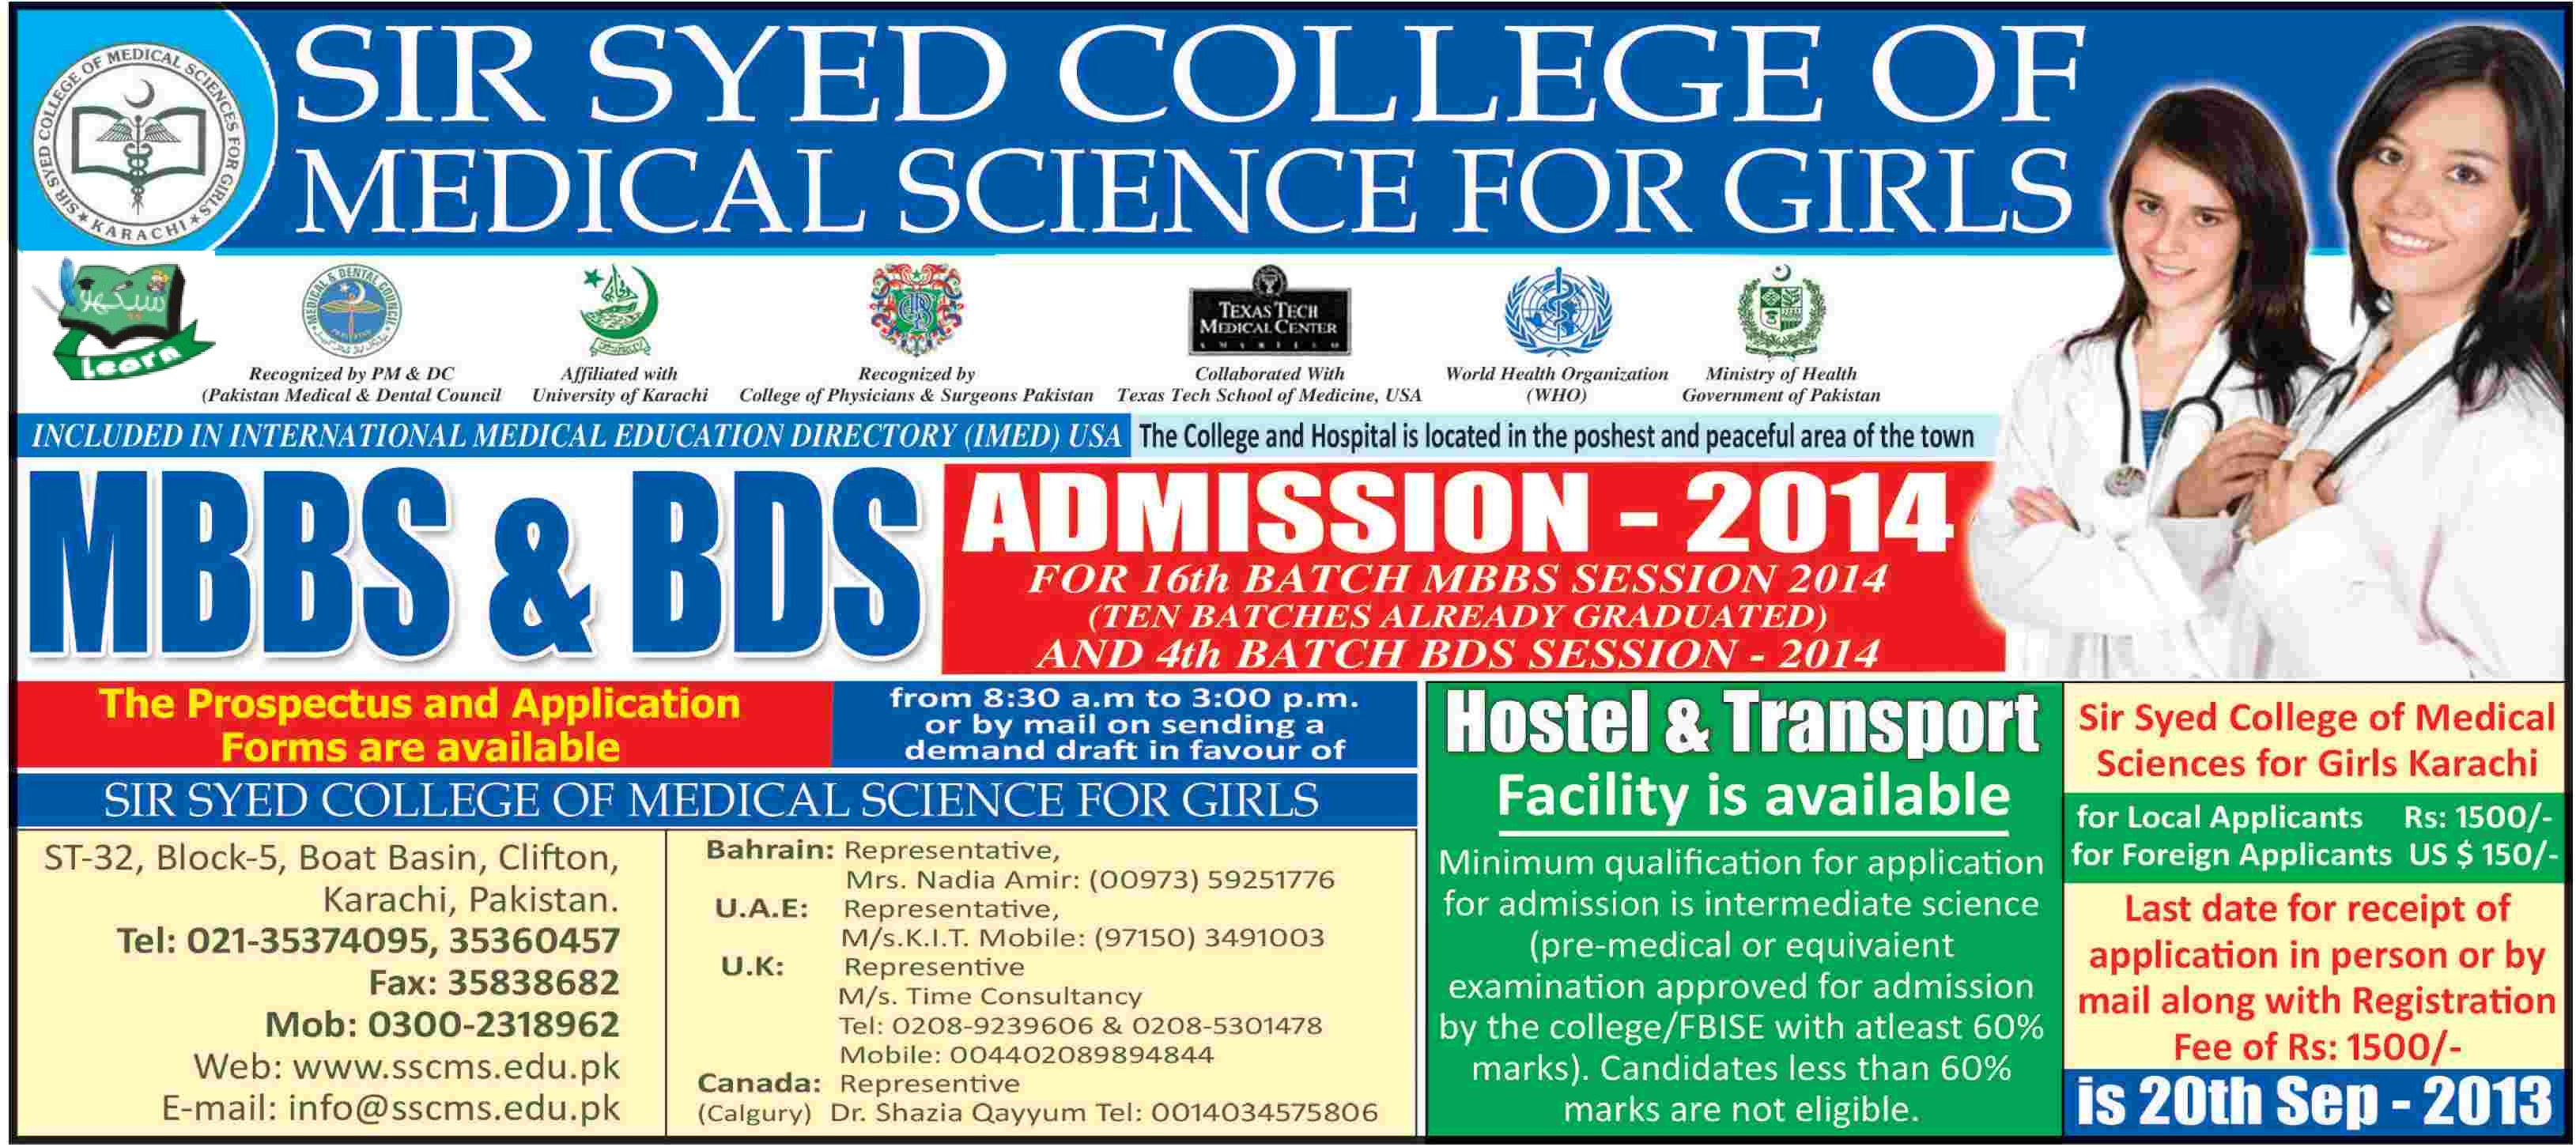 Sir Syed College Of Medical Sciences For Girls Admission 2014